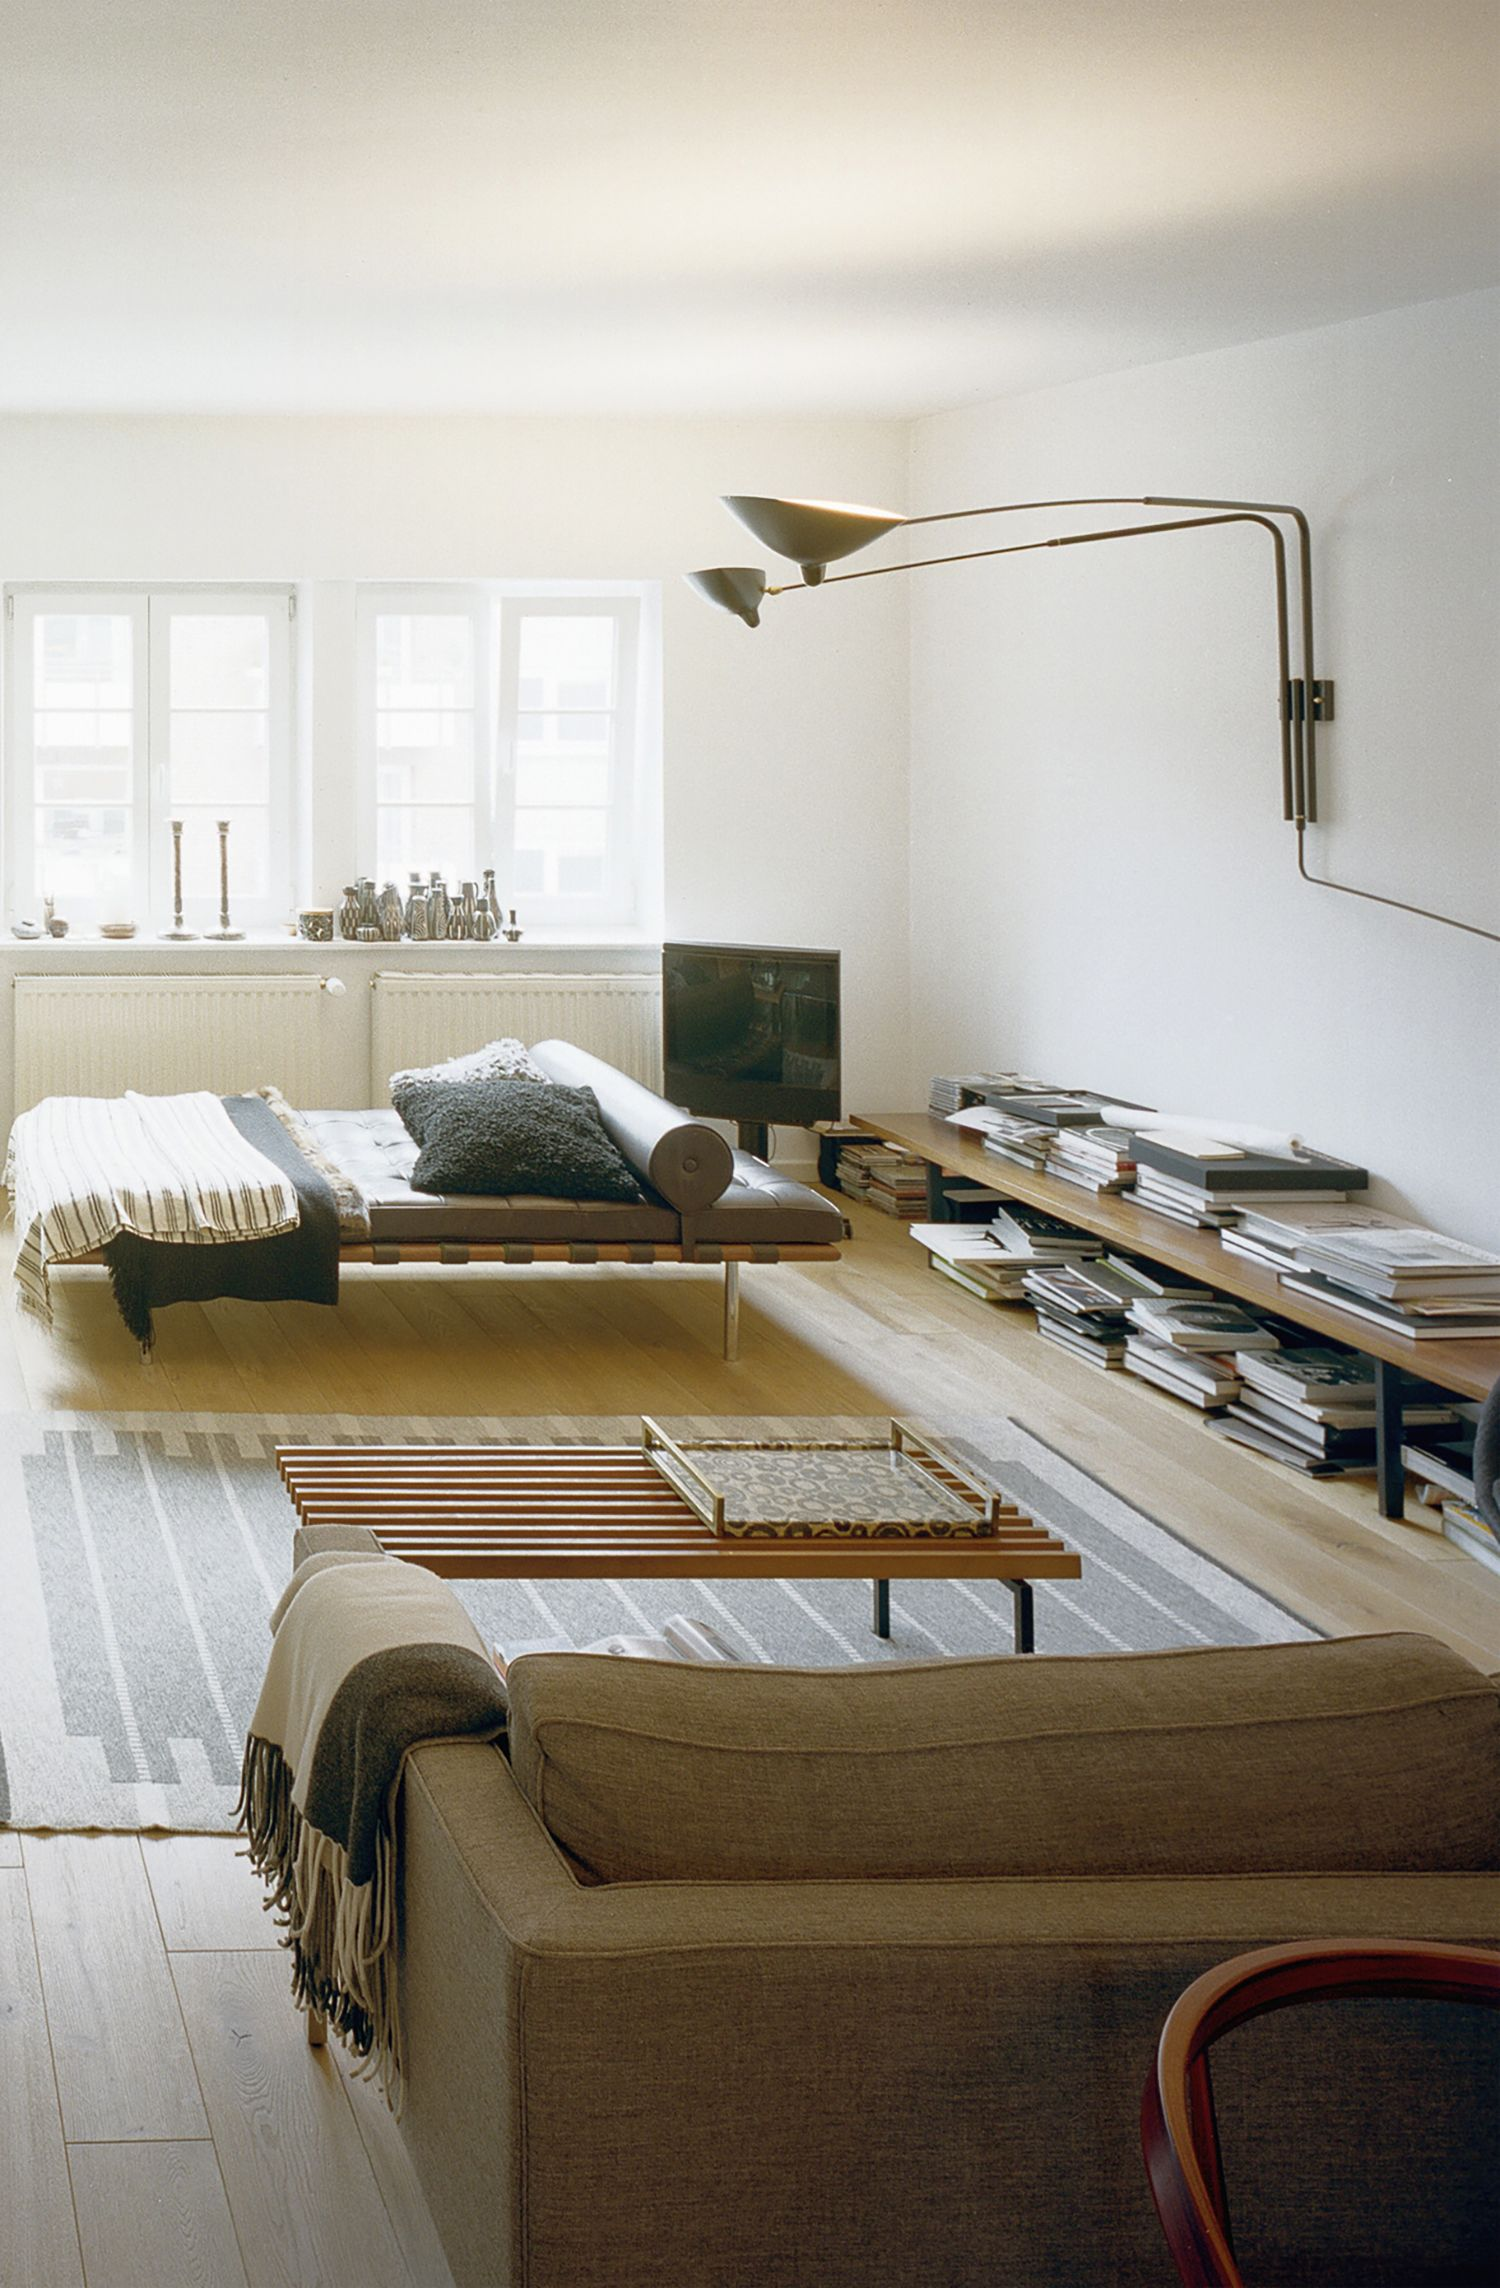 The monocle guide to cozy homes hamburg germany owned by wolfram neugebauer beautiful interiors